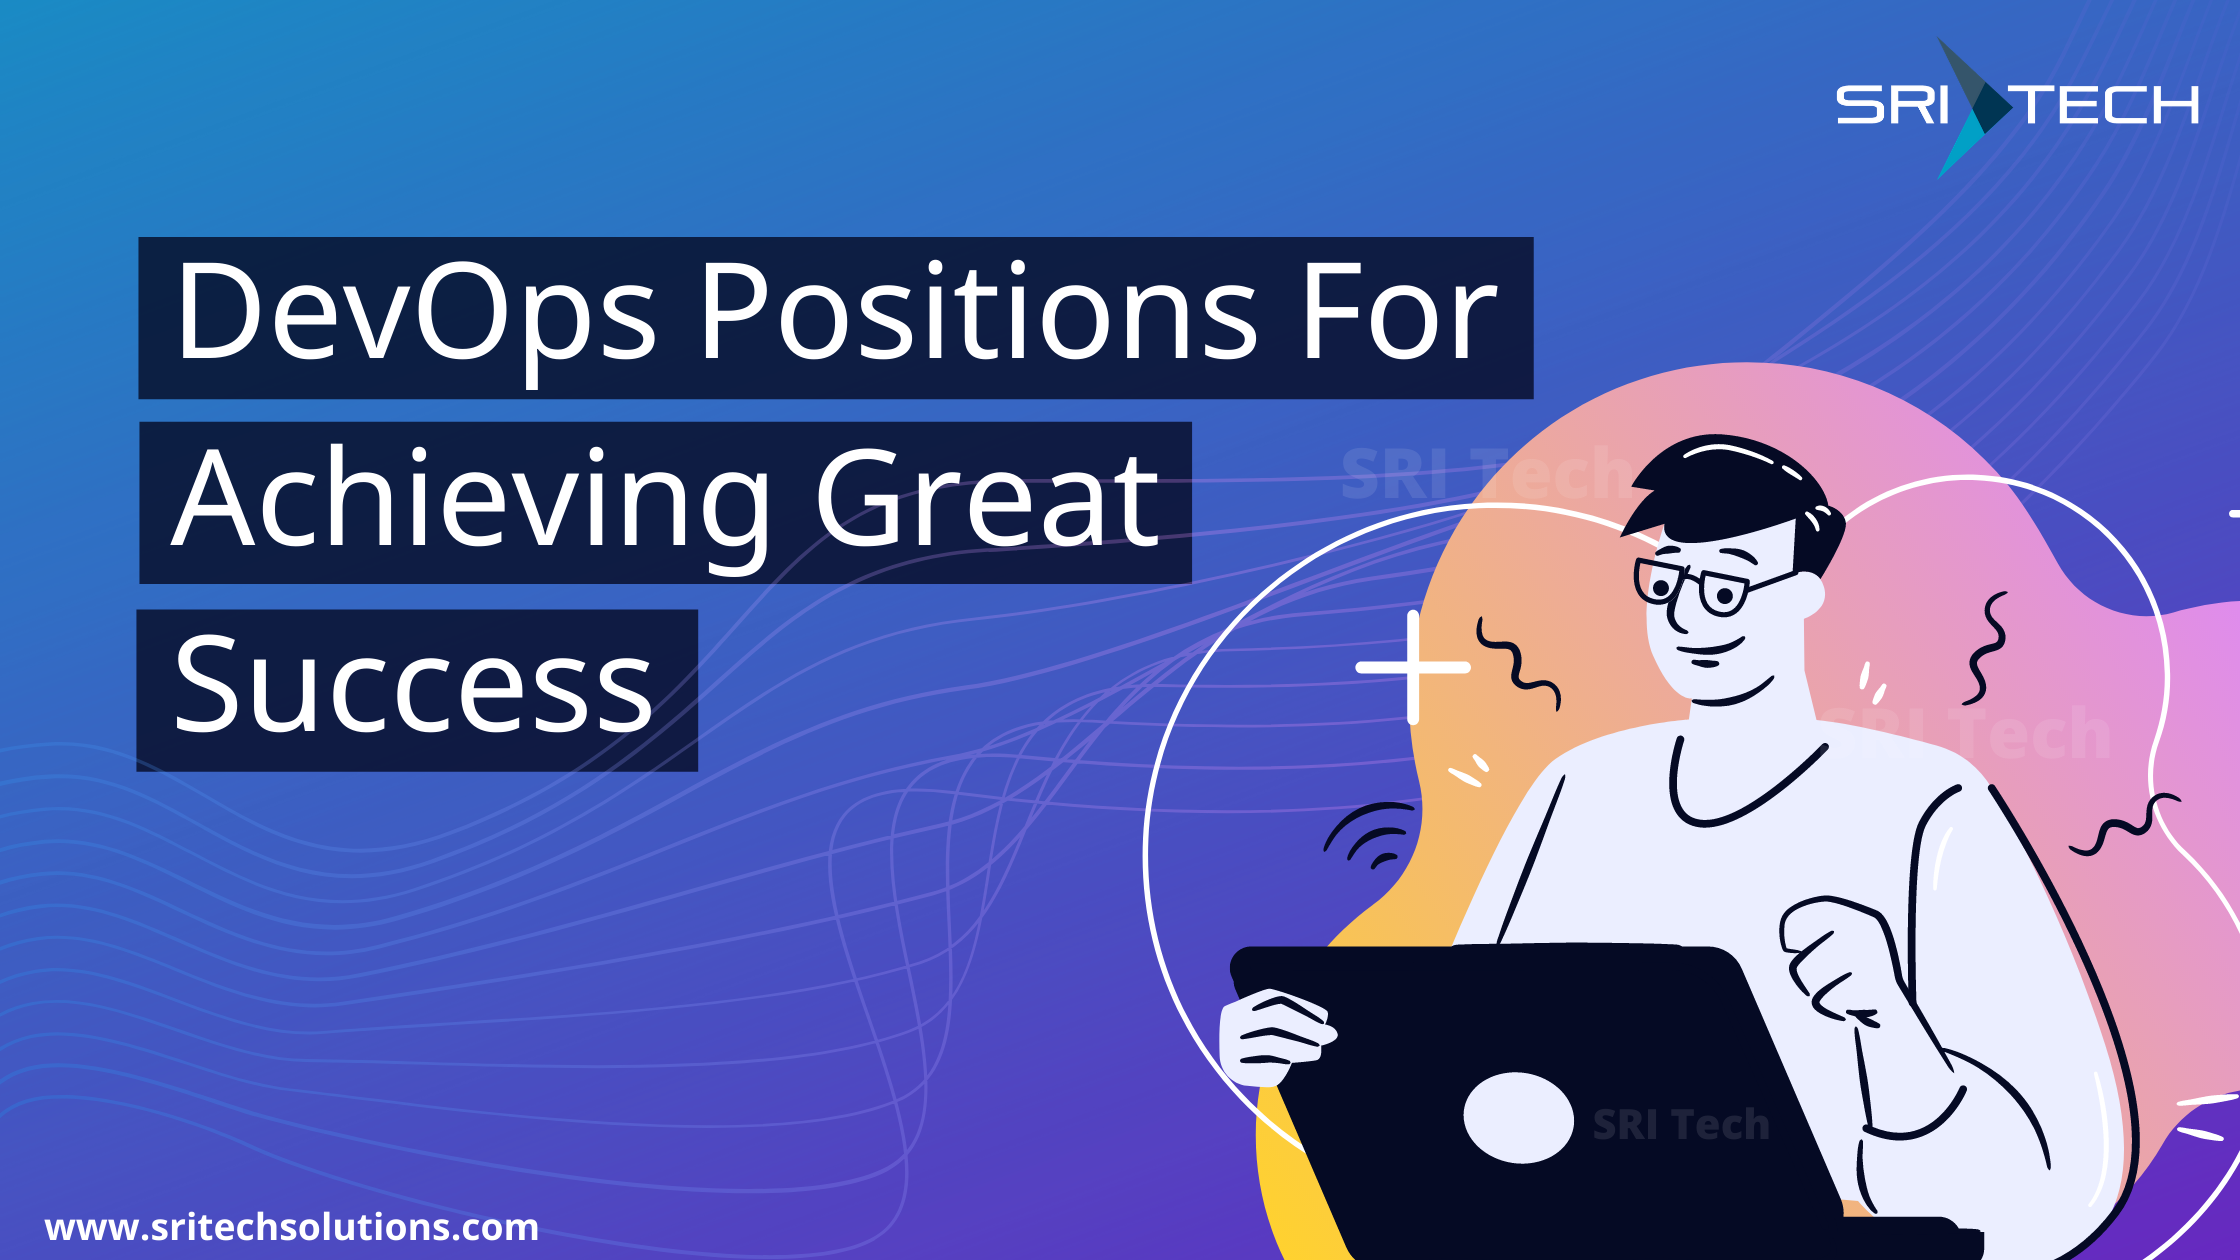 DevOps Positions For Achieving Great Success